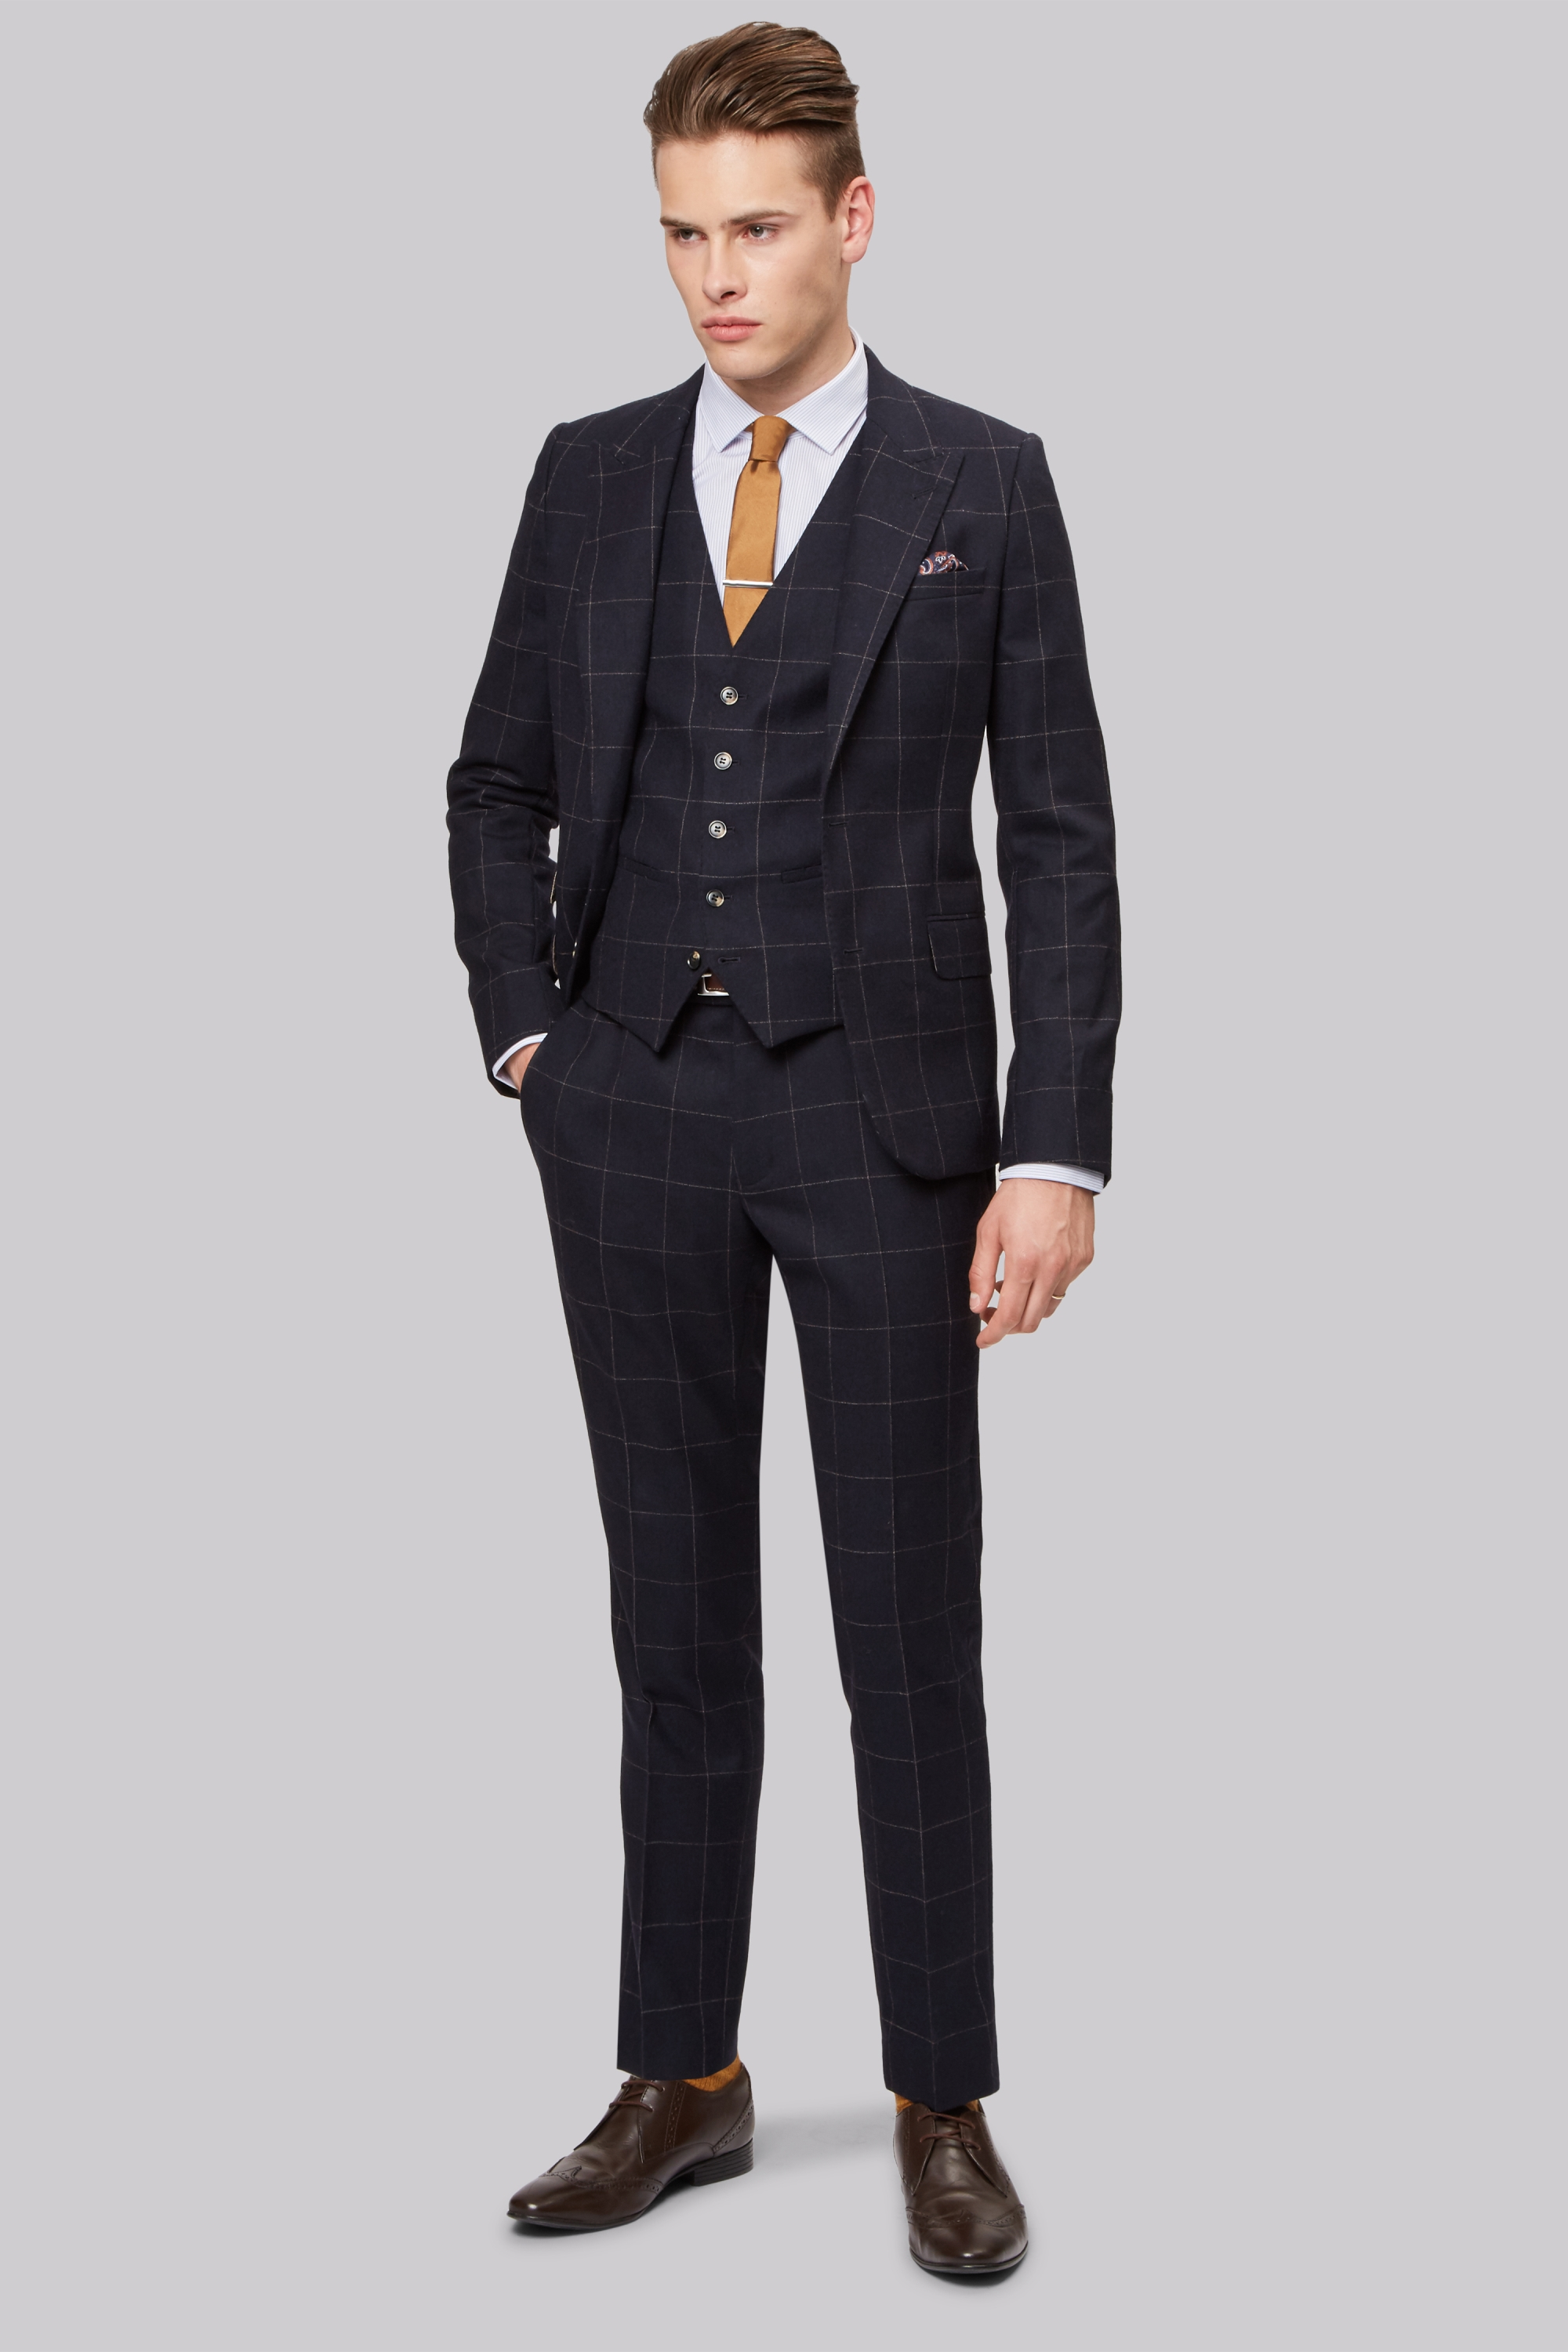 Clearance for Men | Clearance Suits | Moss Bros